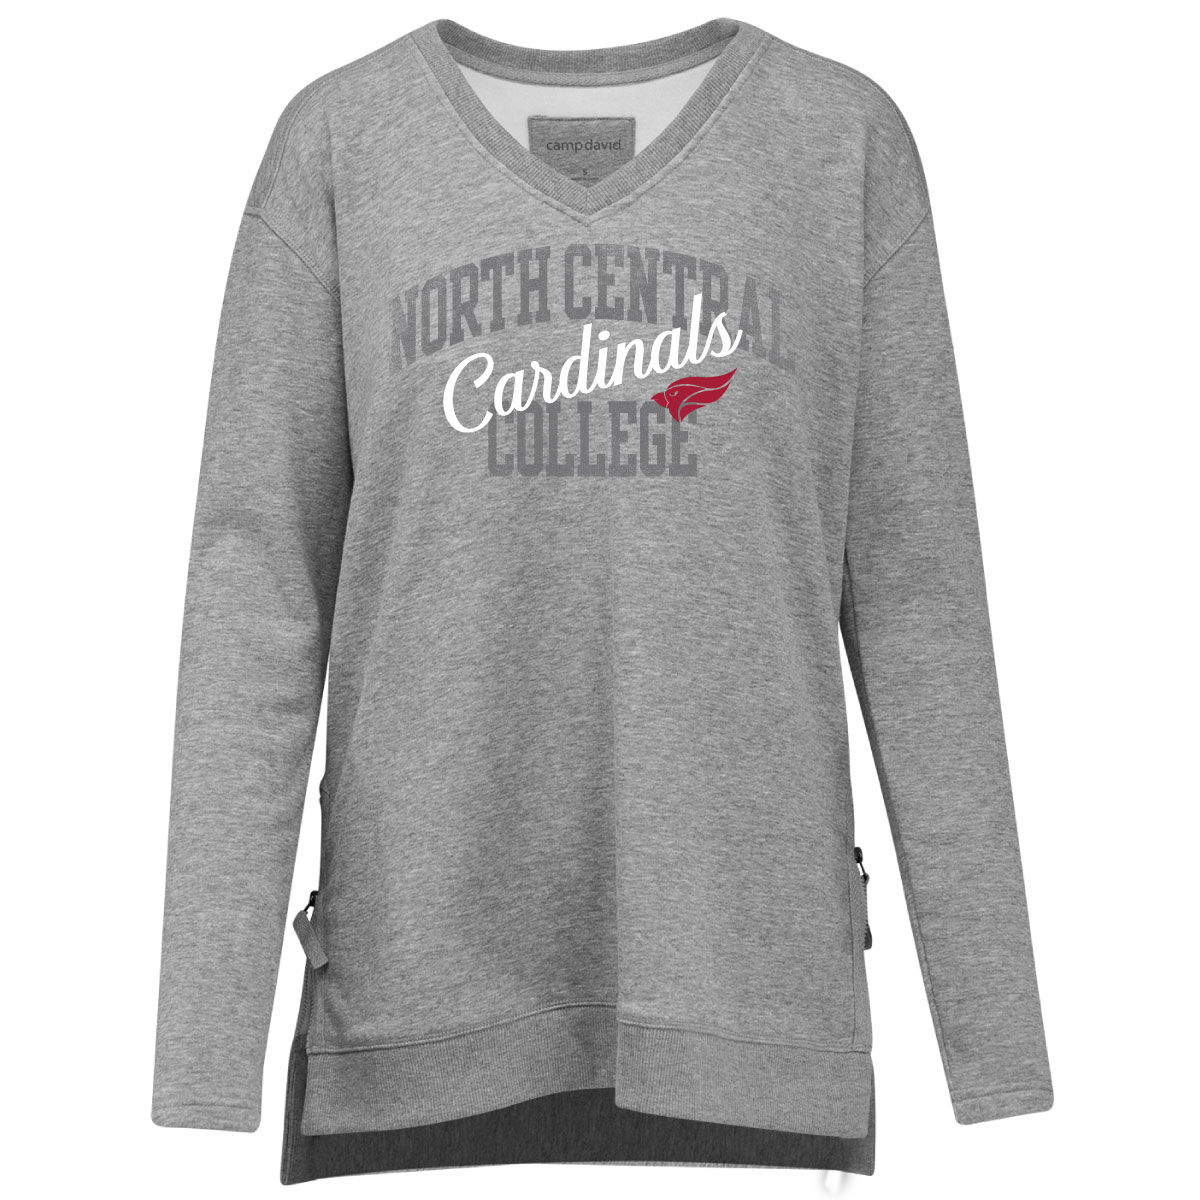 Image for the North Central College Eden by Camp David Clearance product